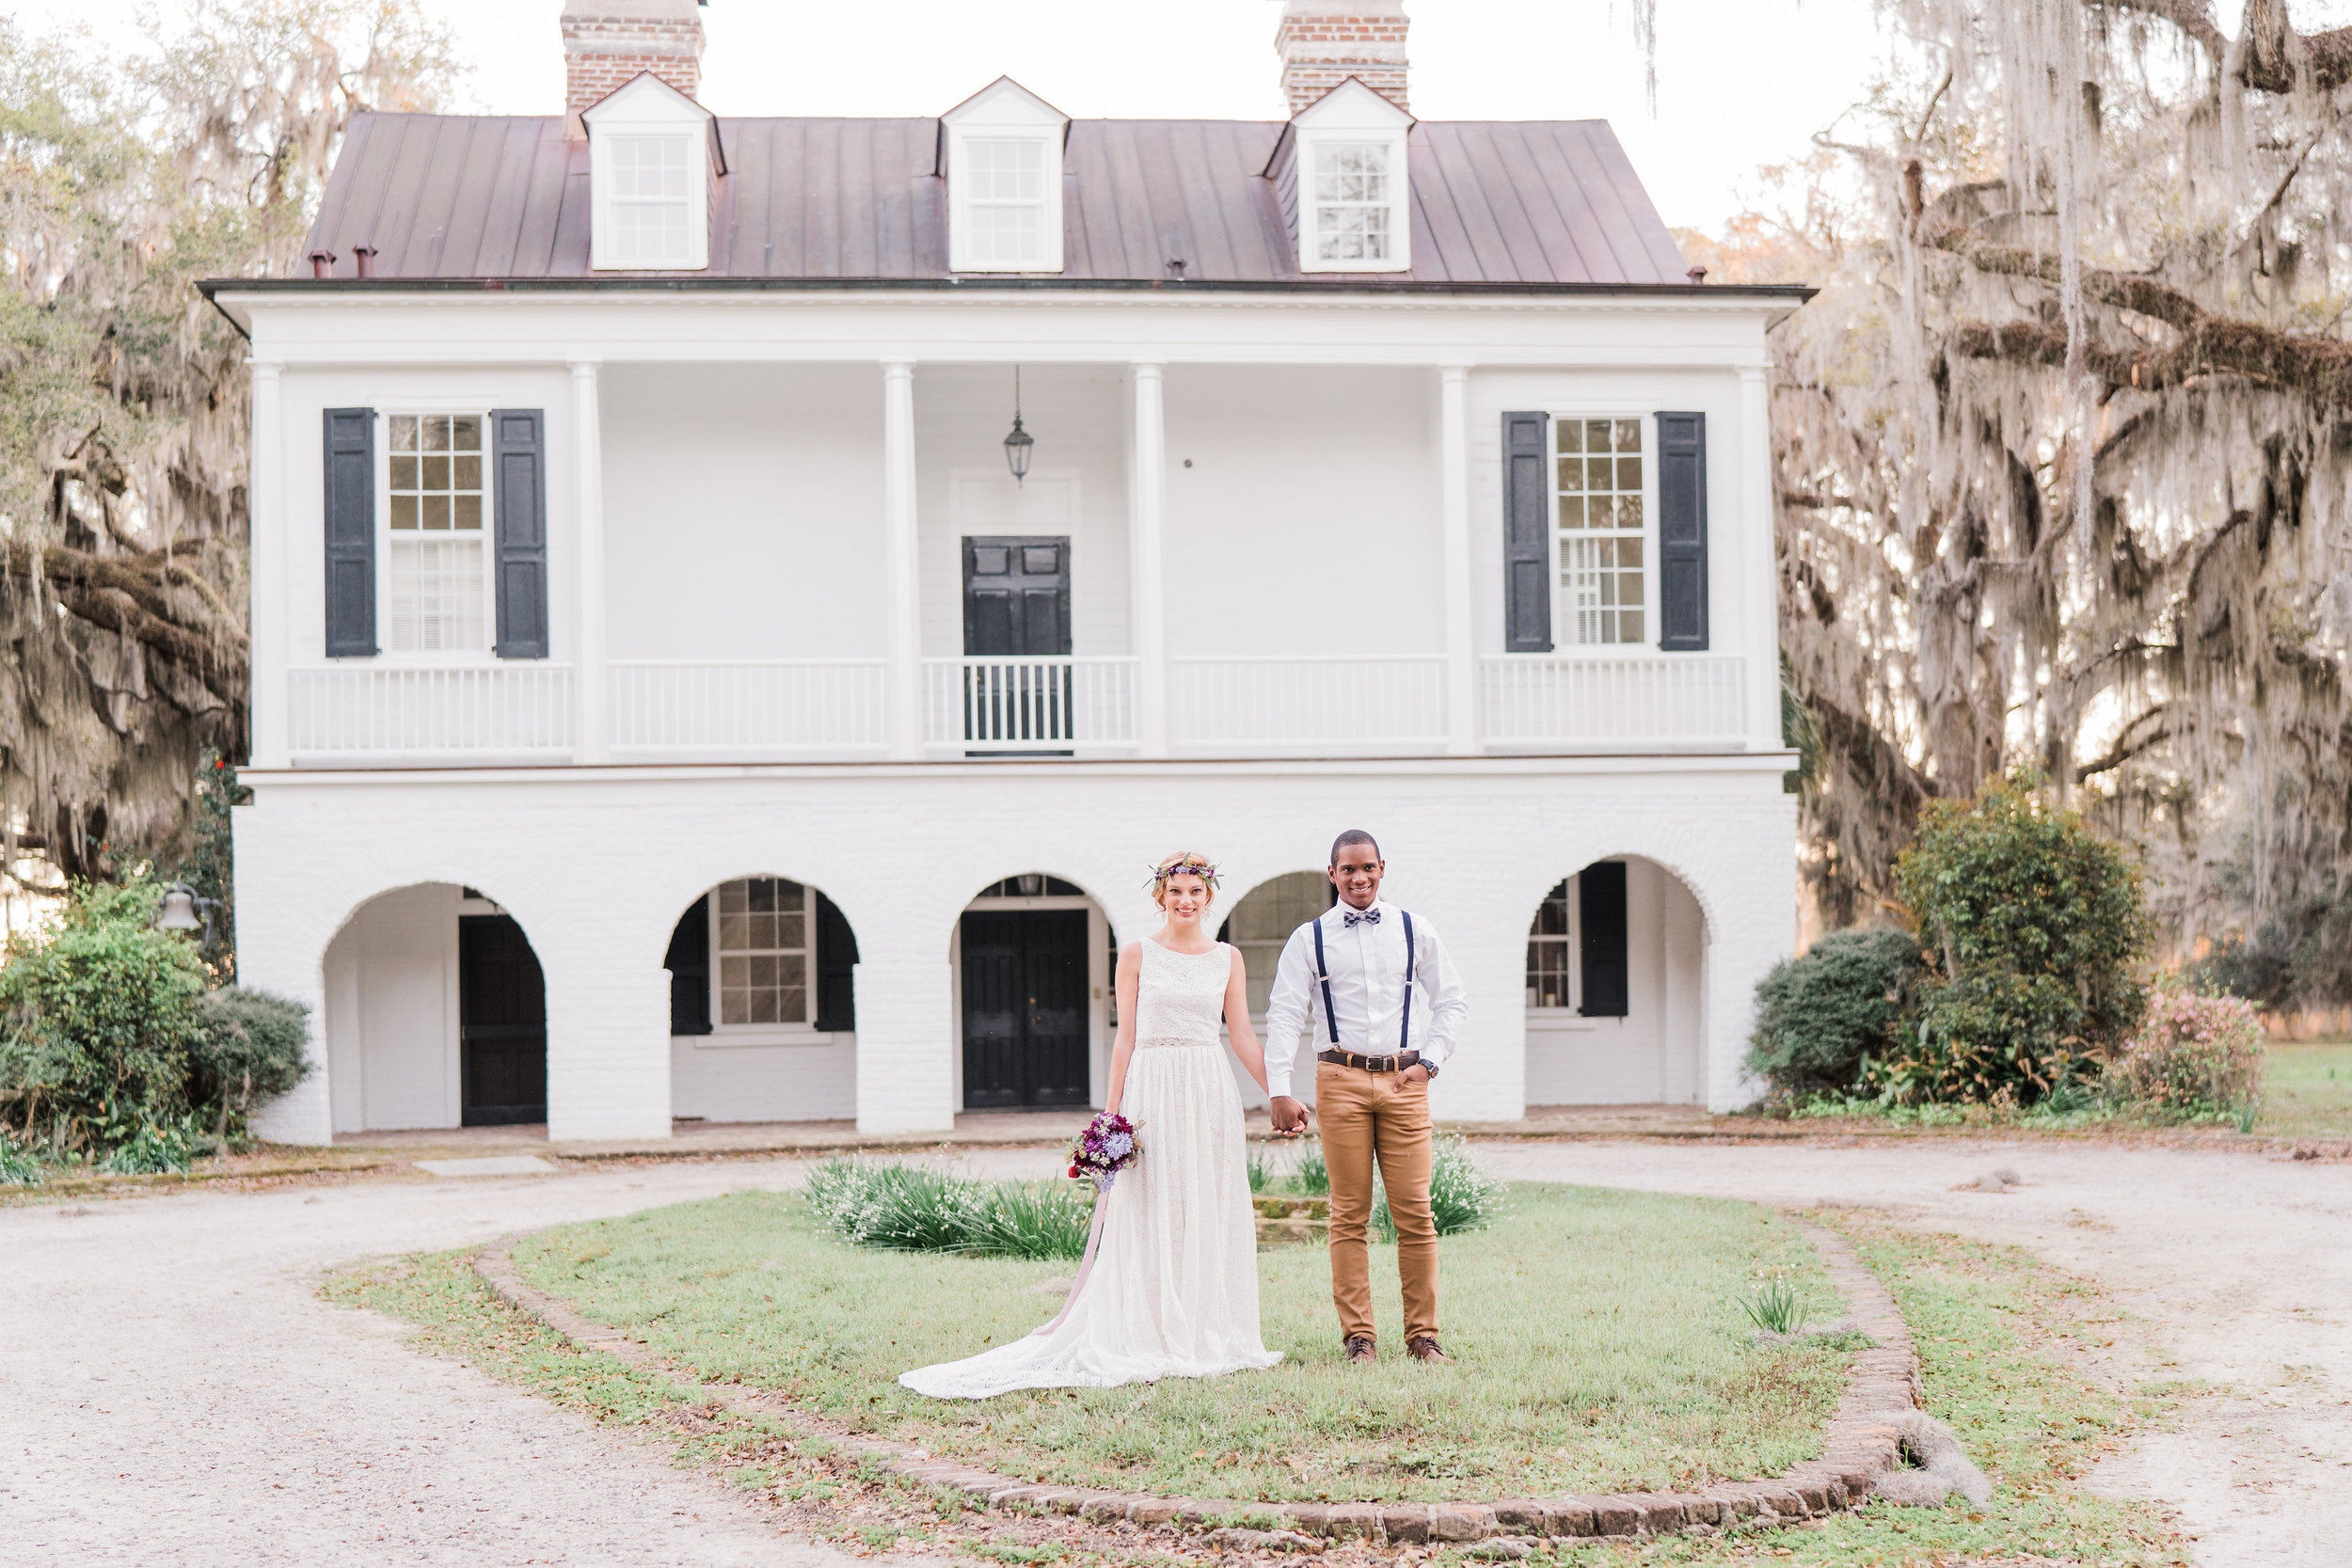 Wedding Inspiration: Boho Elopement Styled Shoot at Grove Plantation House | Palmetto State Weddings